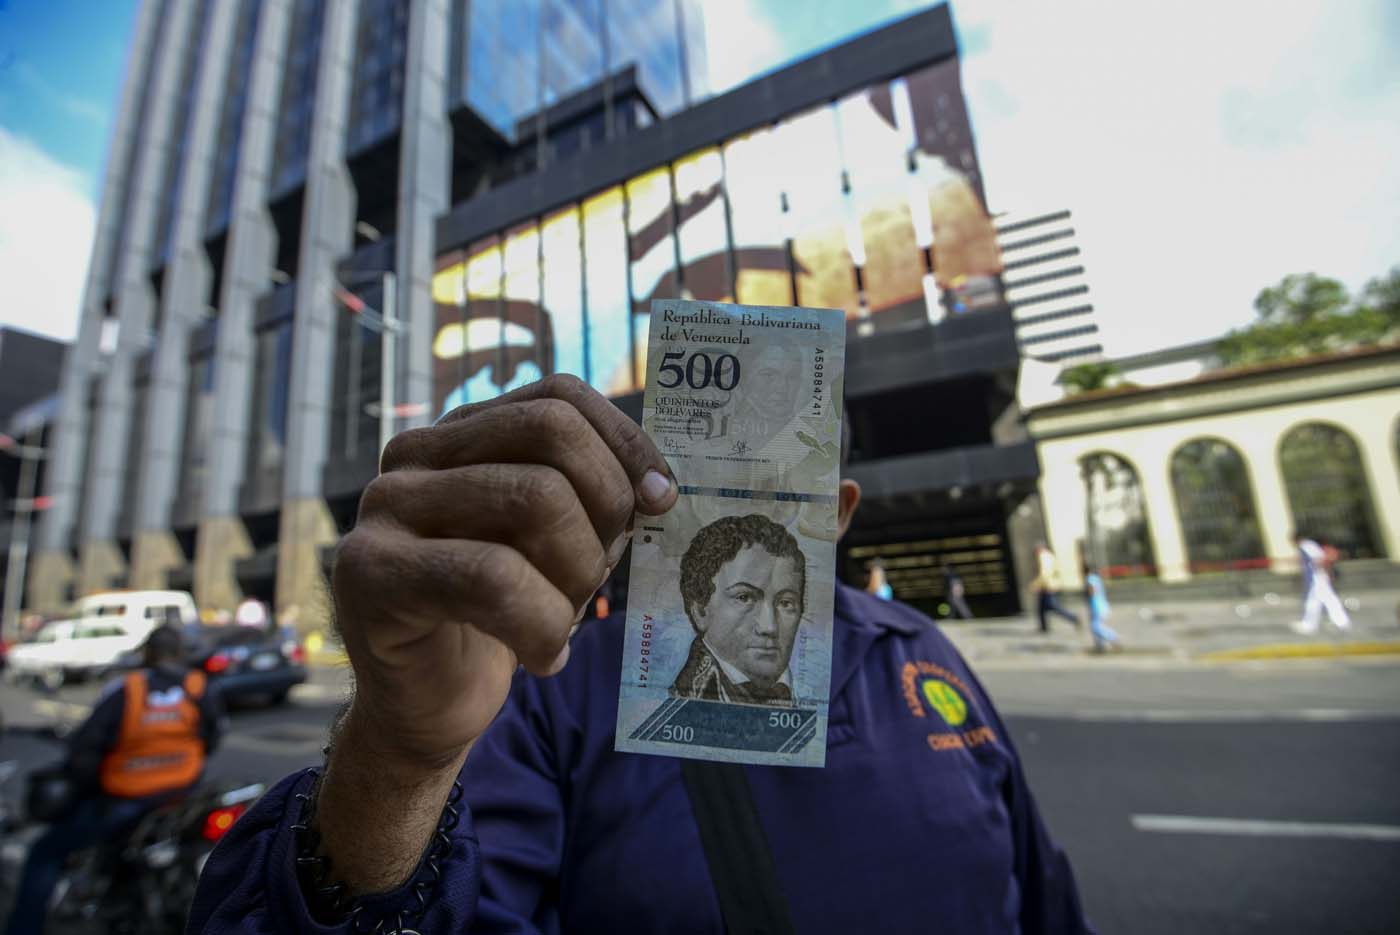 A man shows a new 500-Bolivar-note (74 cents of US dollar) in Caracas on January 16, 2017. A new family of currency will progressively come into circulation in the South American country that has the highest inflation rate in the world, which IMF forecasts say could soon hit 475 percent. / AFP PHOTO / JUAN BARRETO